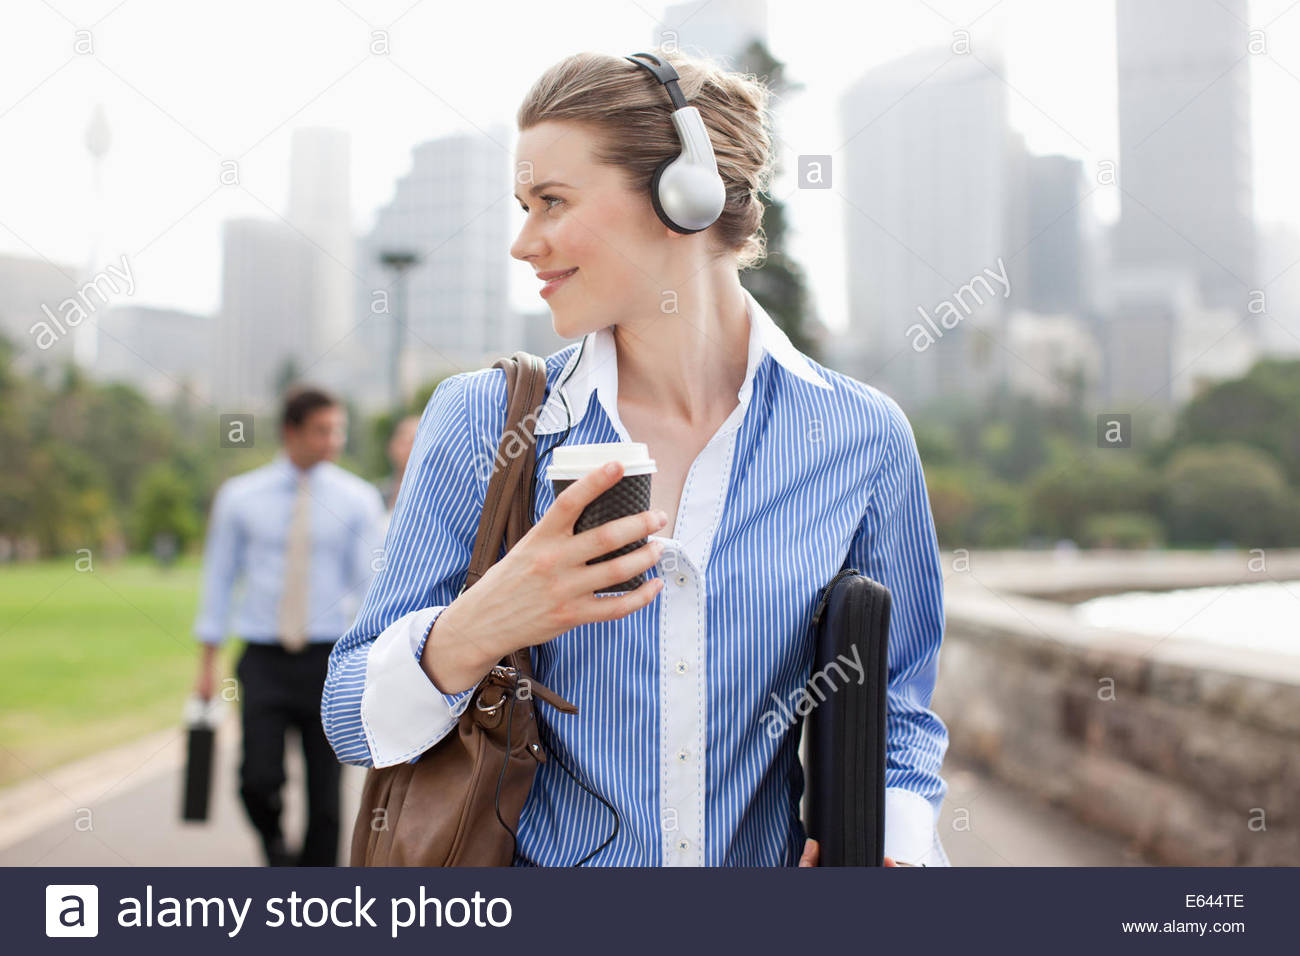 Businesswoman listening to headphones and carrying coffee - Stock Image